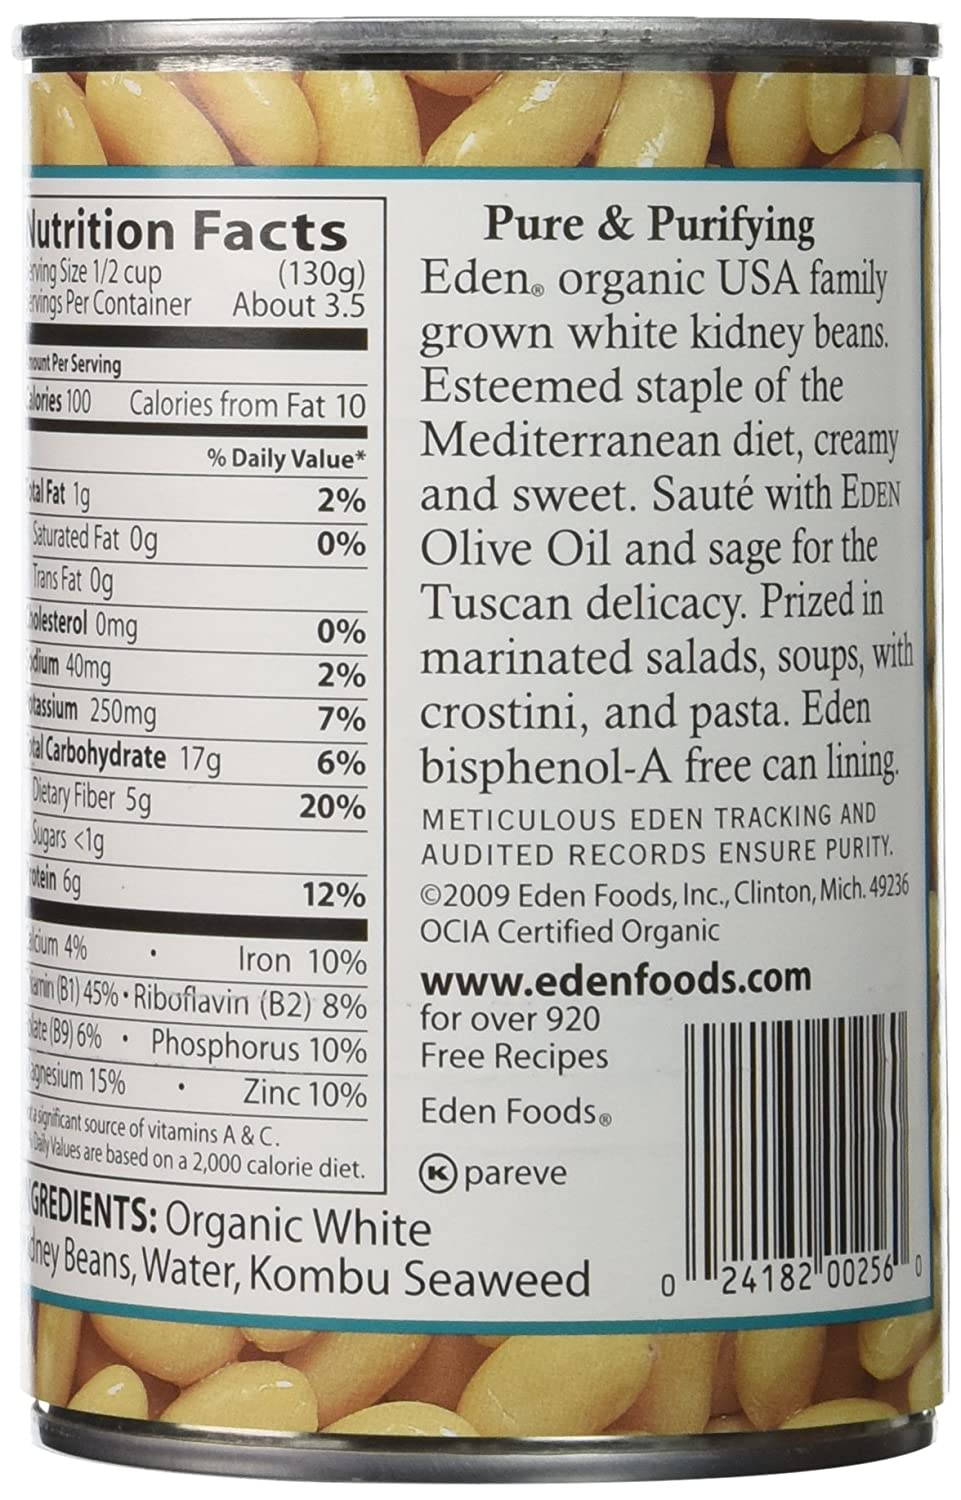 Amazon.com : Eden Organic Cannellini White Kidney Beans, No Salt Added, 15-Ounce Cans (Pack of 12) : Kidney Beans Produce : Grocery & Gourmet Food